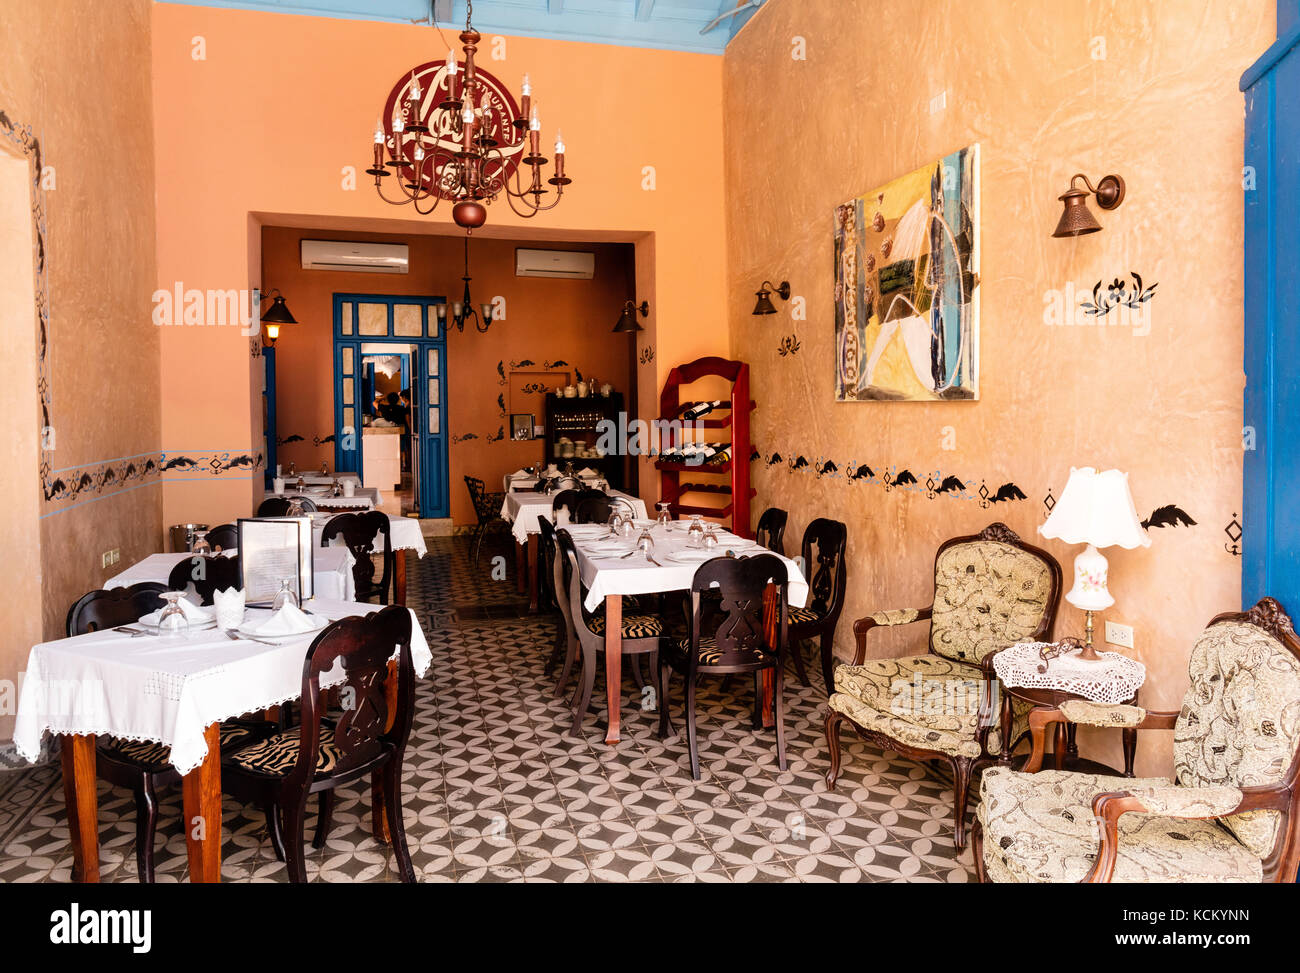 Room displaying beautiful antique furniture  in the Museo Romantico, Plaza Mayor, Trinidad, Cuba,Caribbean - Stock Image